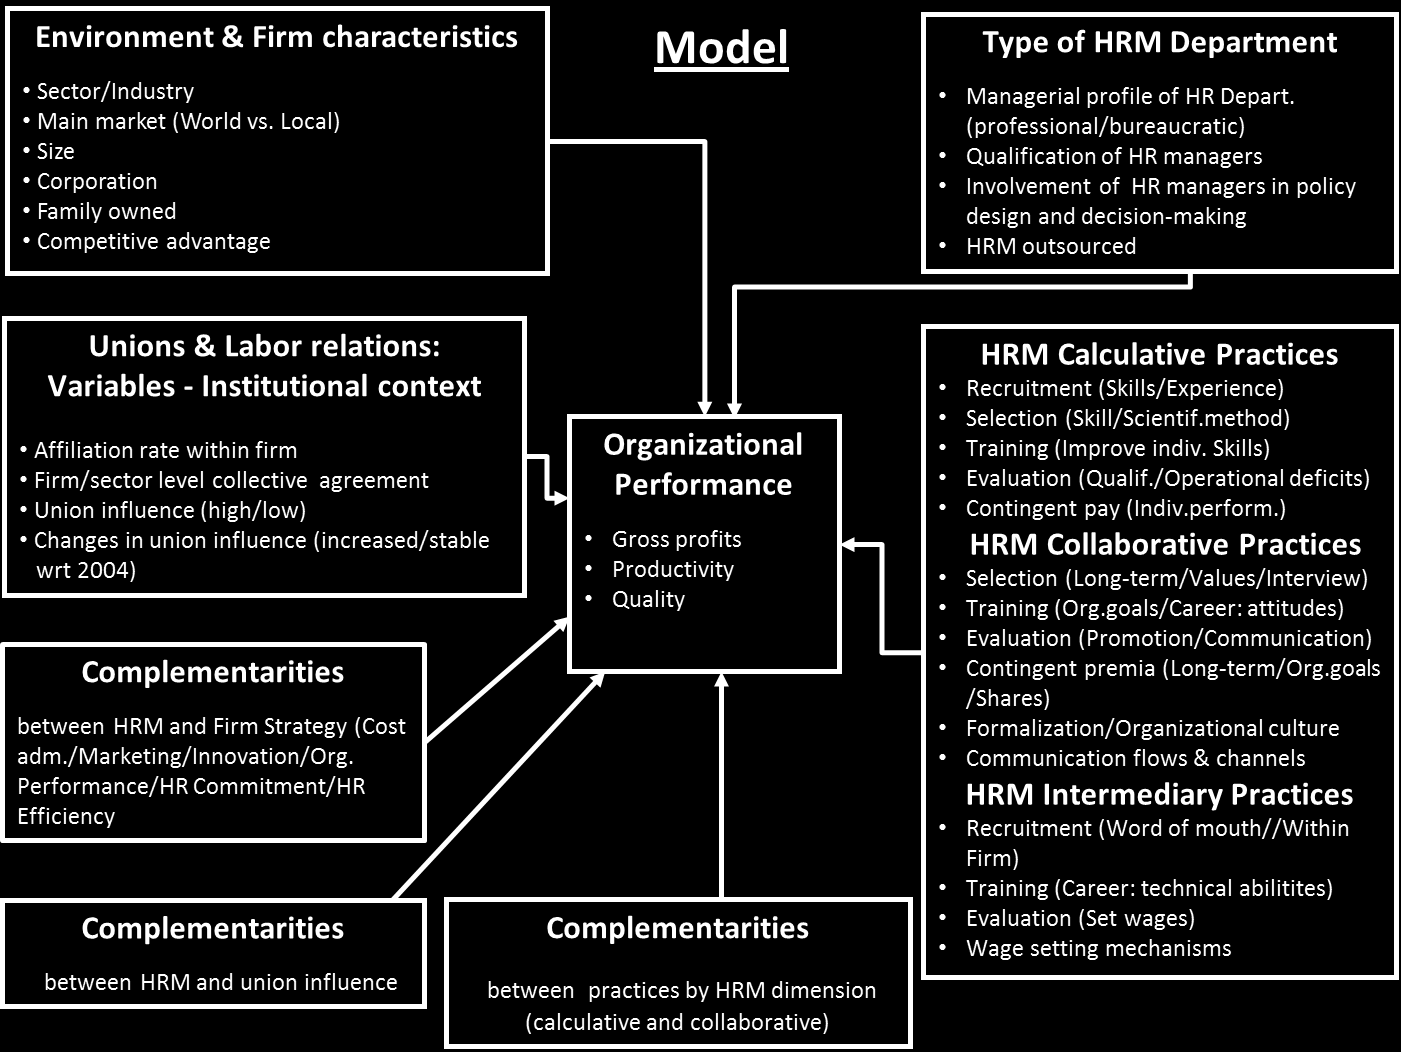 1) What is the impact of unions on organizational performance when controlling for HRM practices? 2) Are there complementarities among HRM practices?